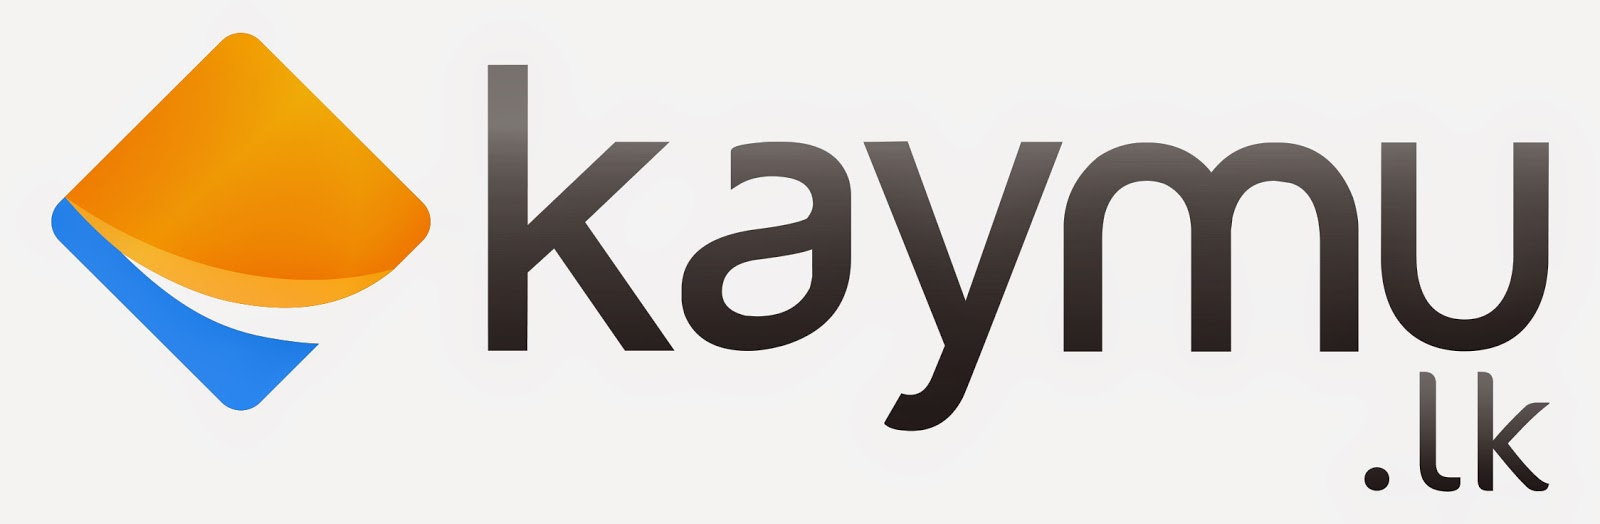 Kaymu.lk, an online market place, launched in Sri Lanka